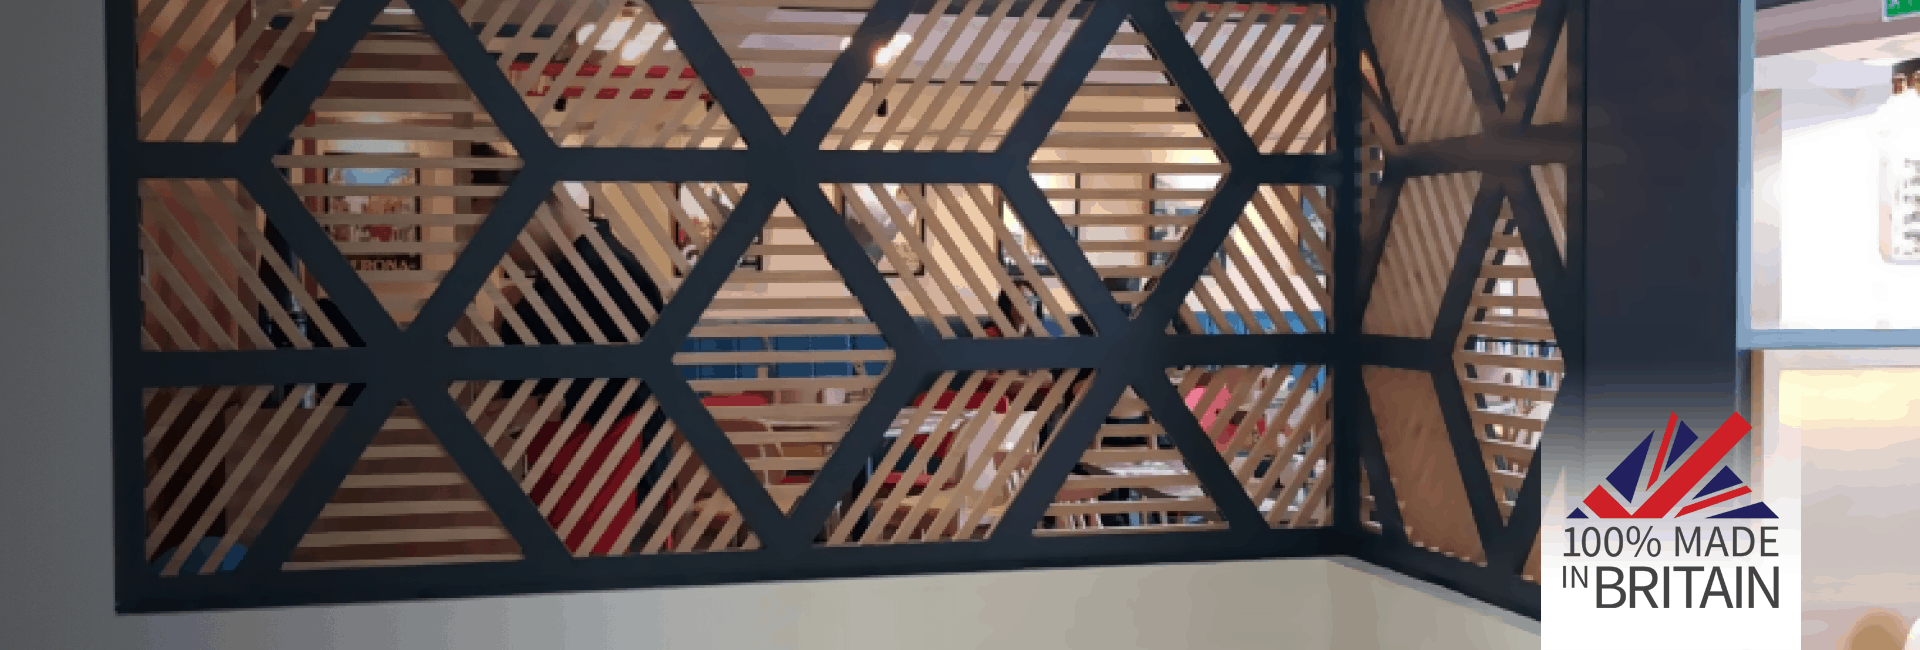 Fretwork panels